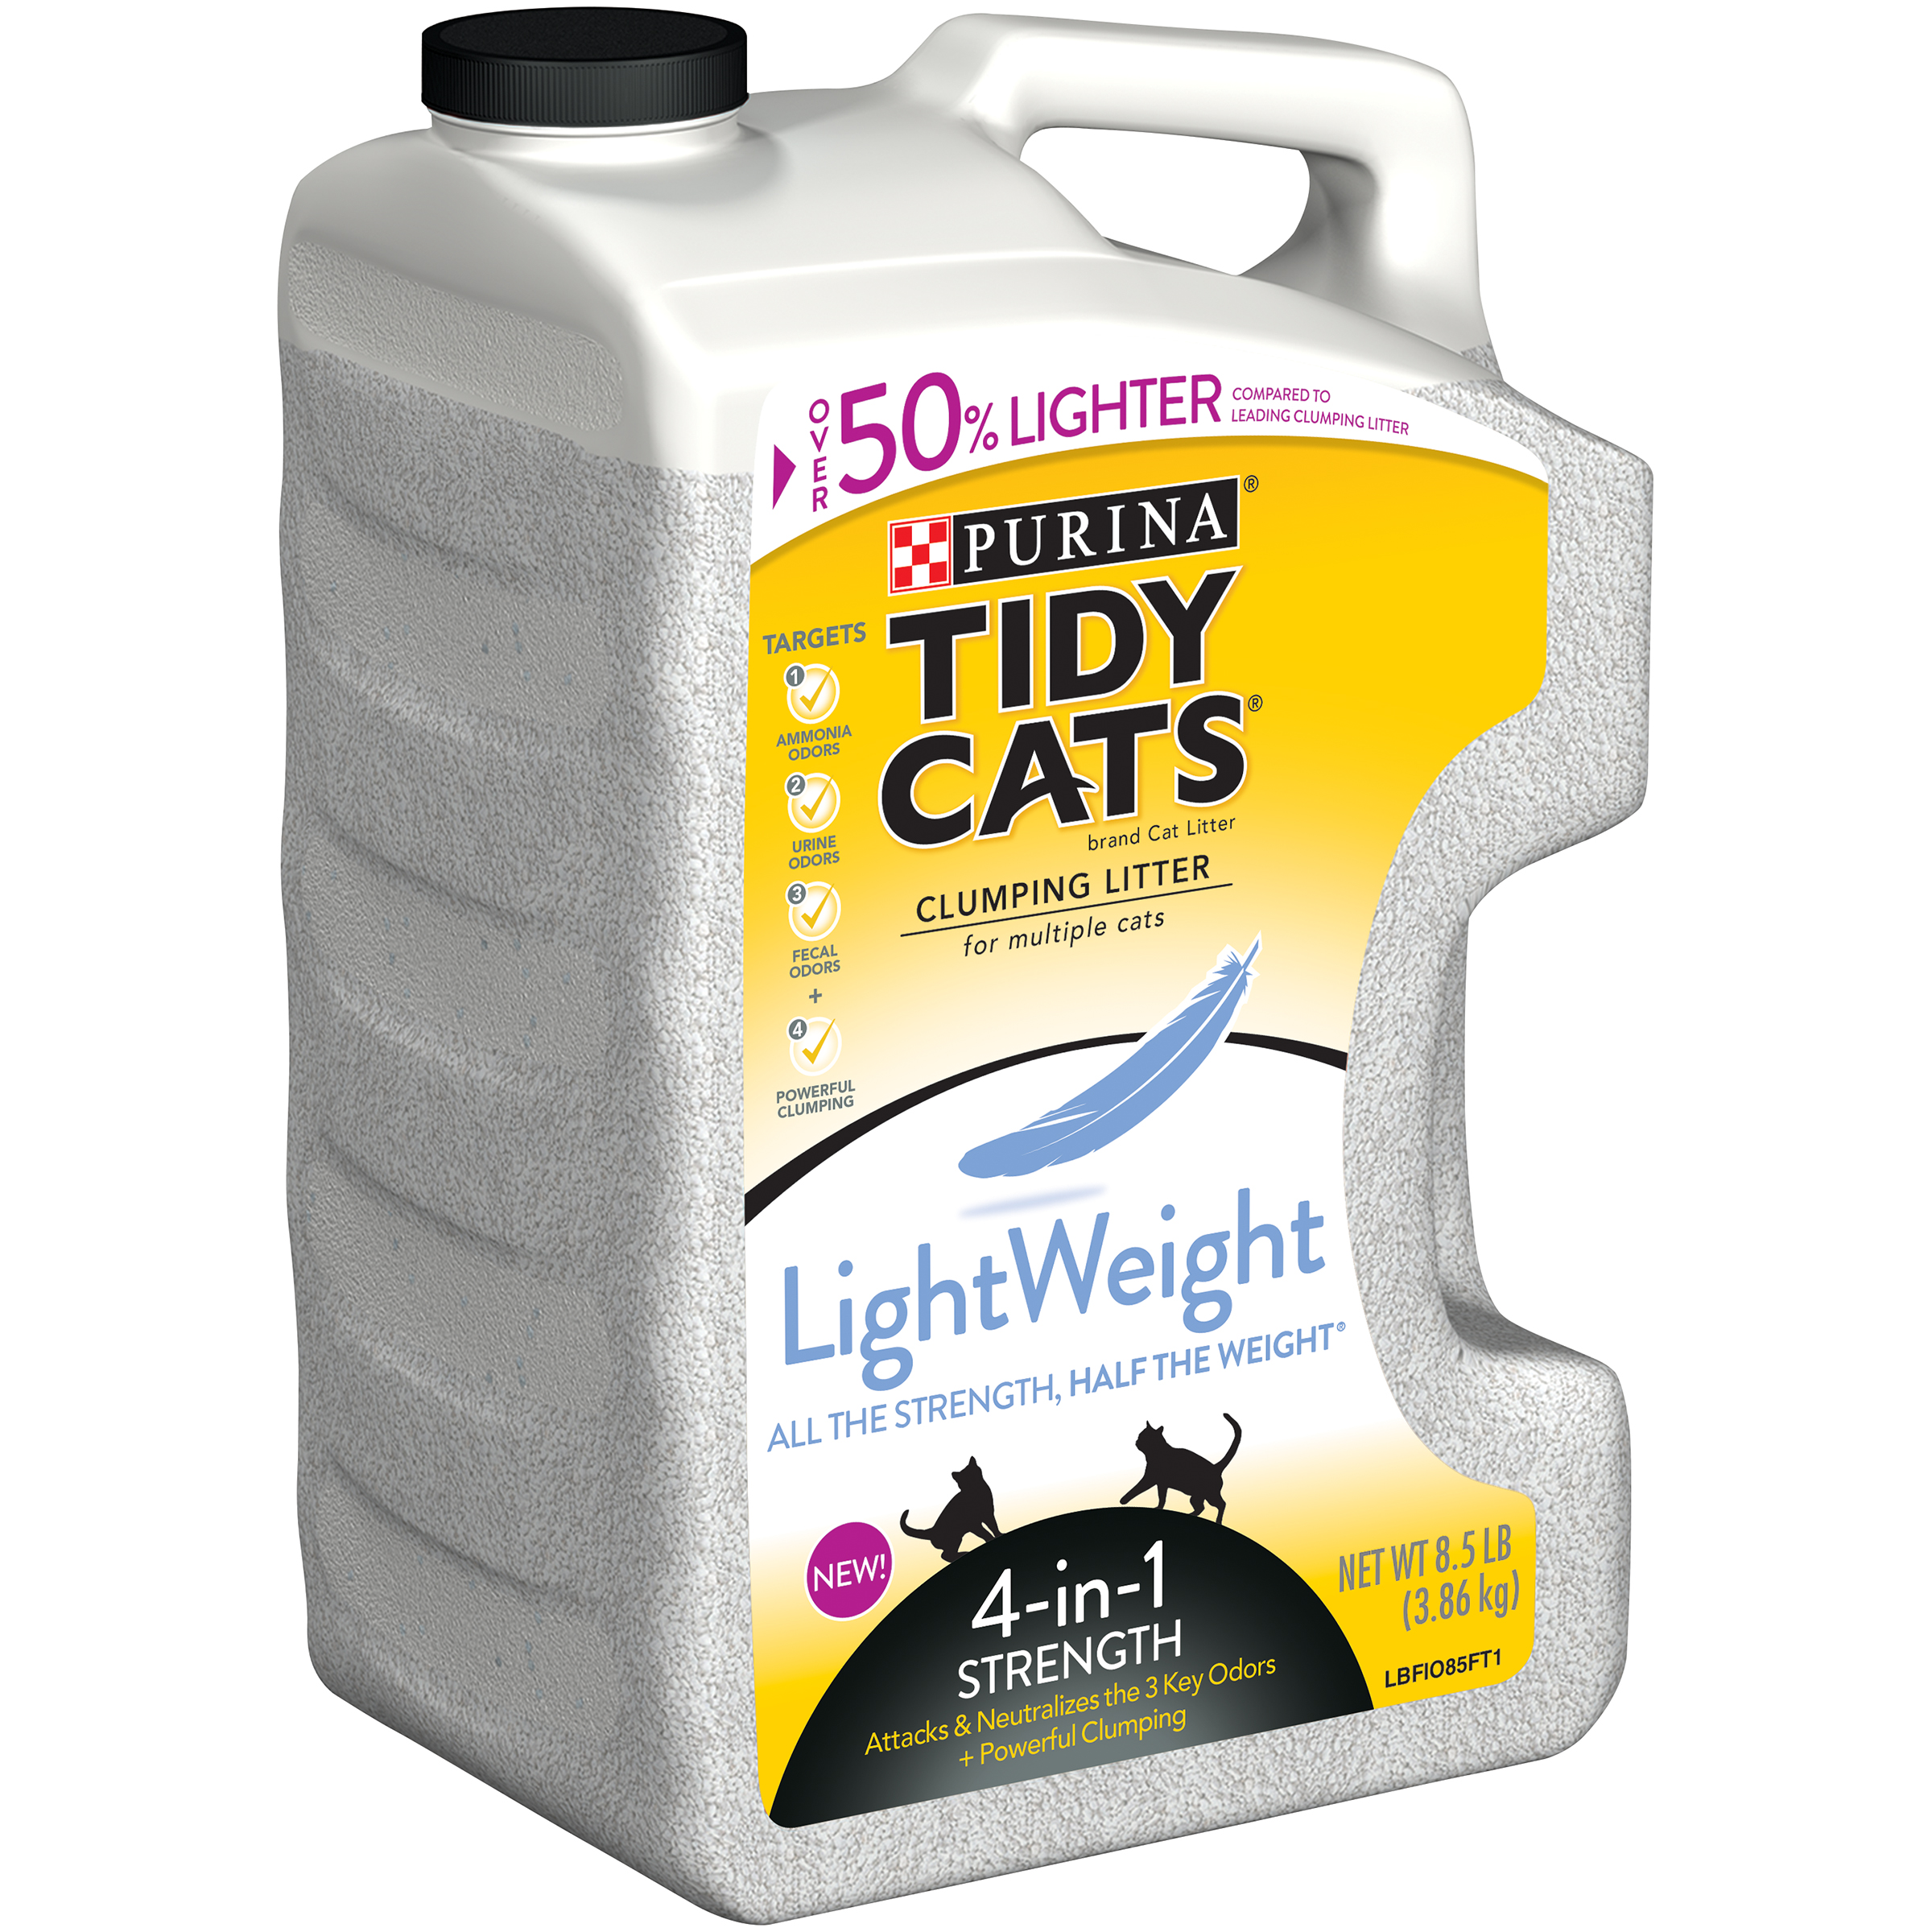 Tidy Cats Clumping Litter LightWeight 4 in 1 Strength for